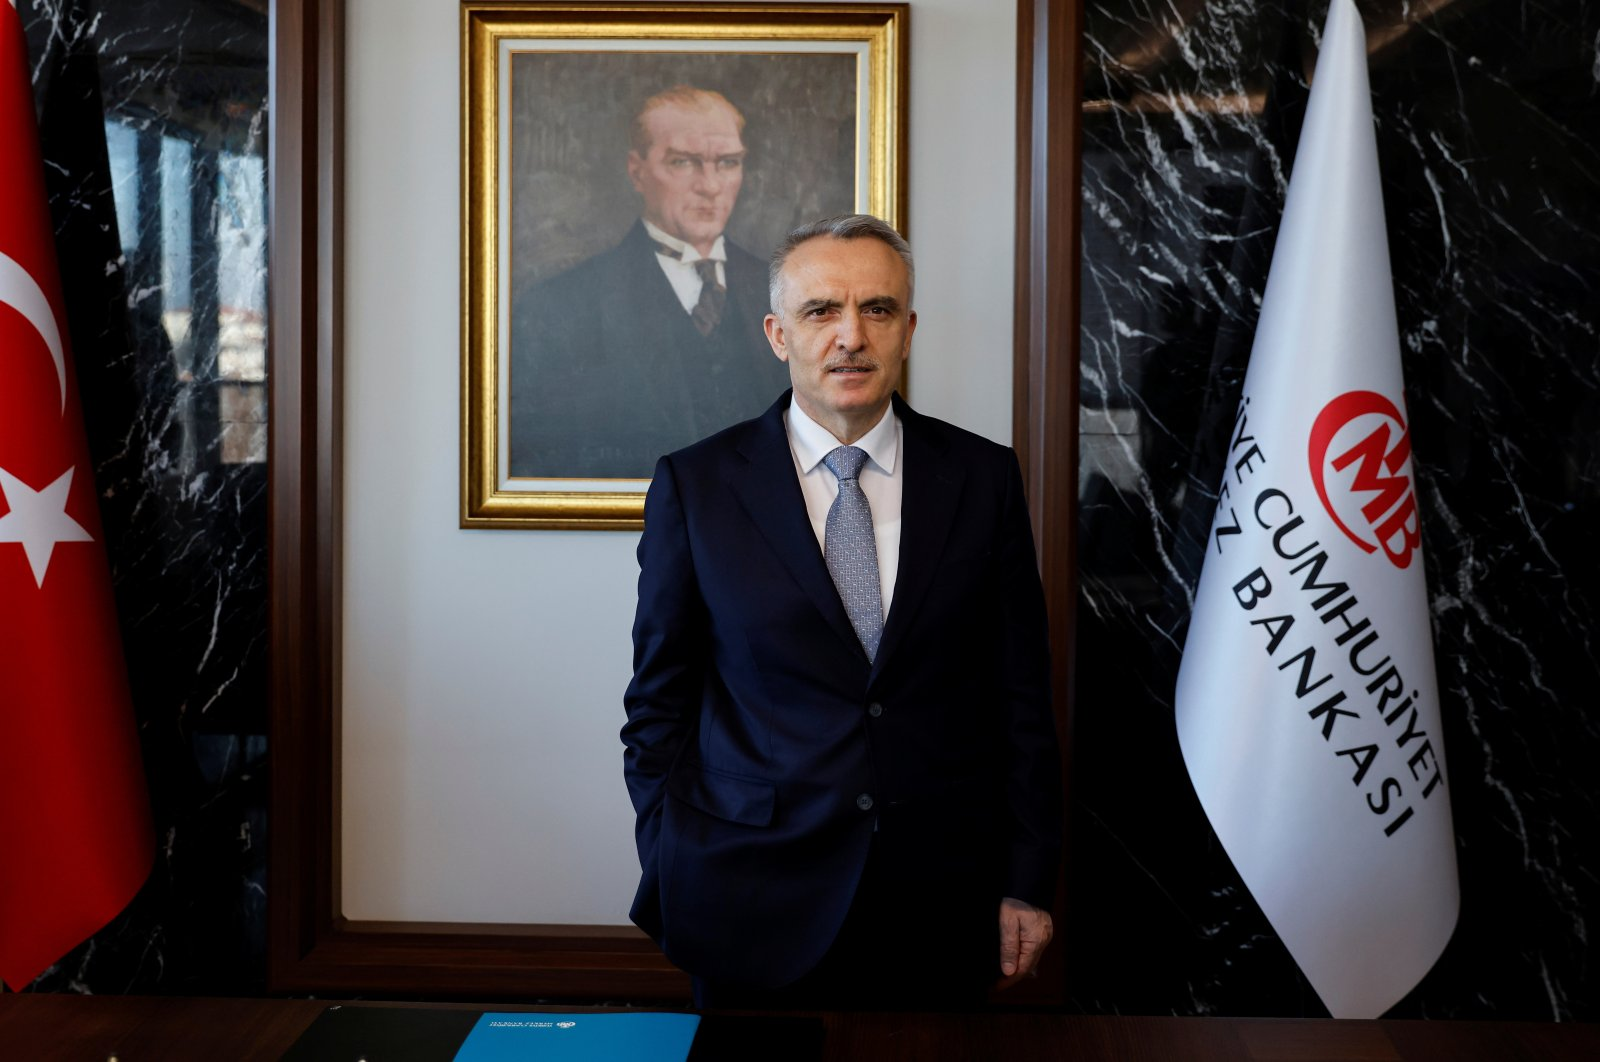 Central Bank of the Republic of Turkey (CBRT) Governor Naci Ağbal poses during an interview in his office in Istanbul, Turkey, Feb. 4, 2021. (Reuters Photo)